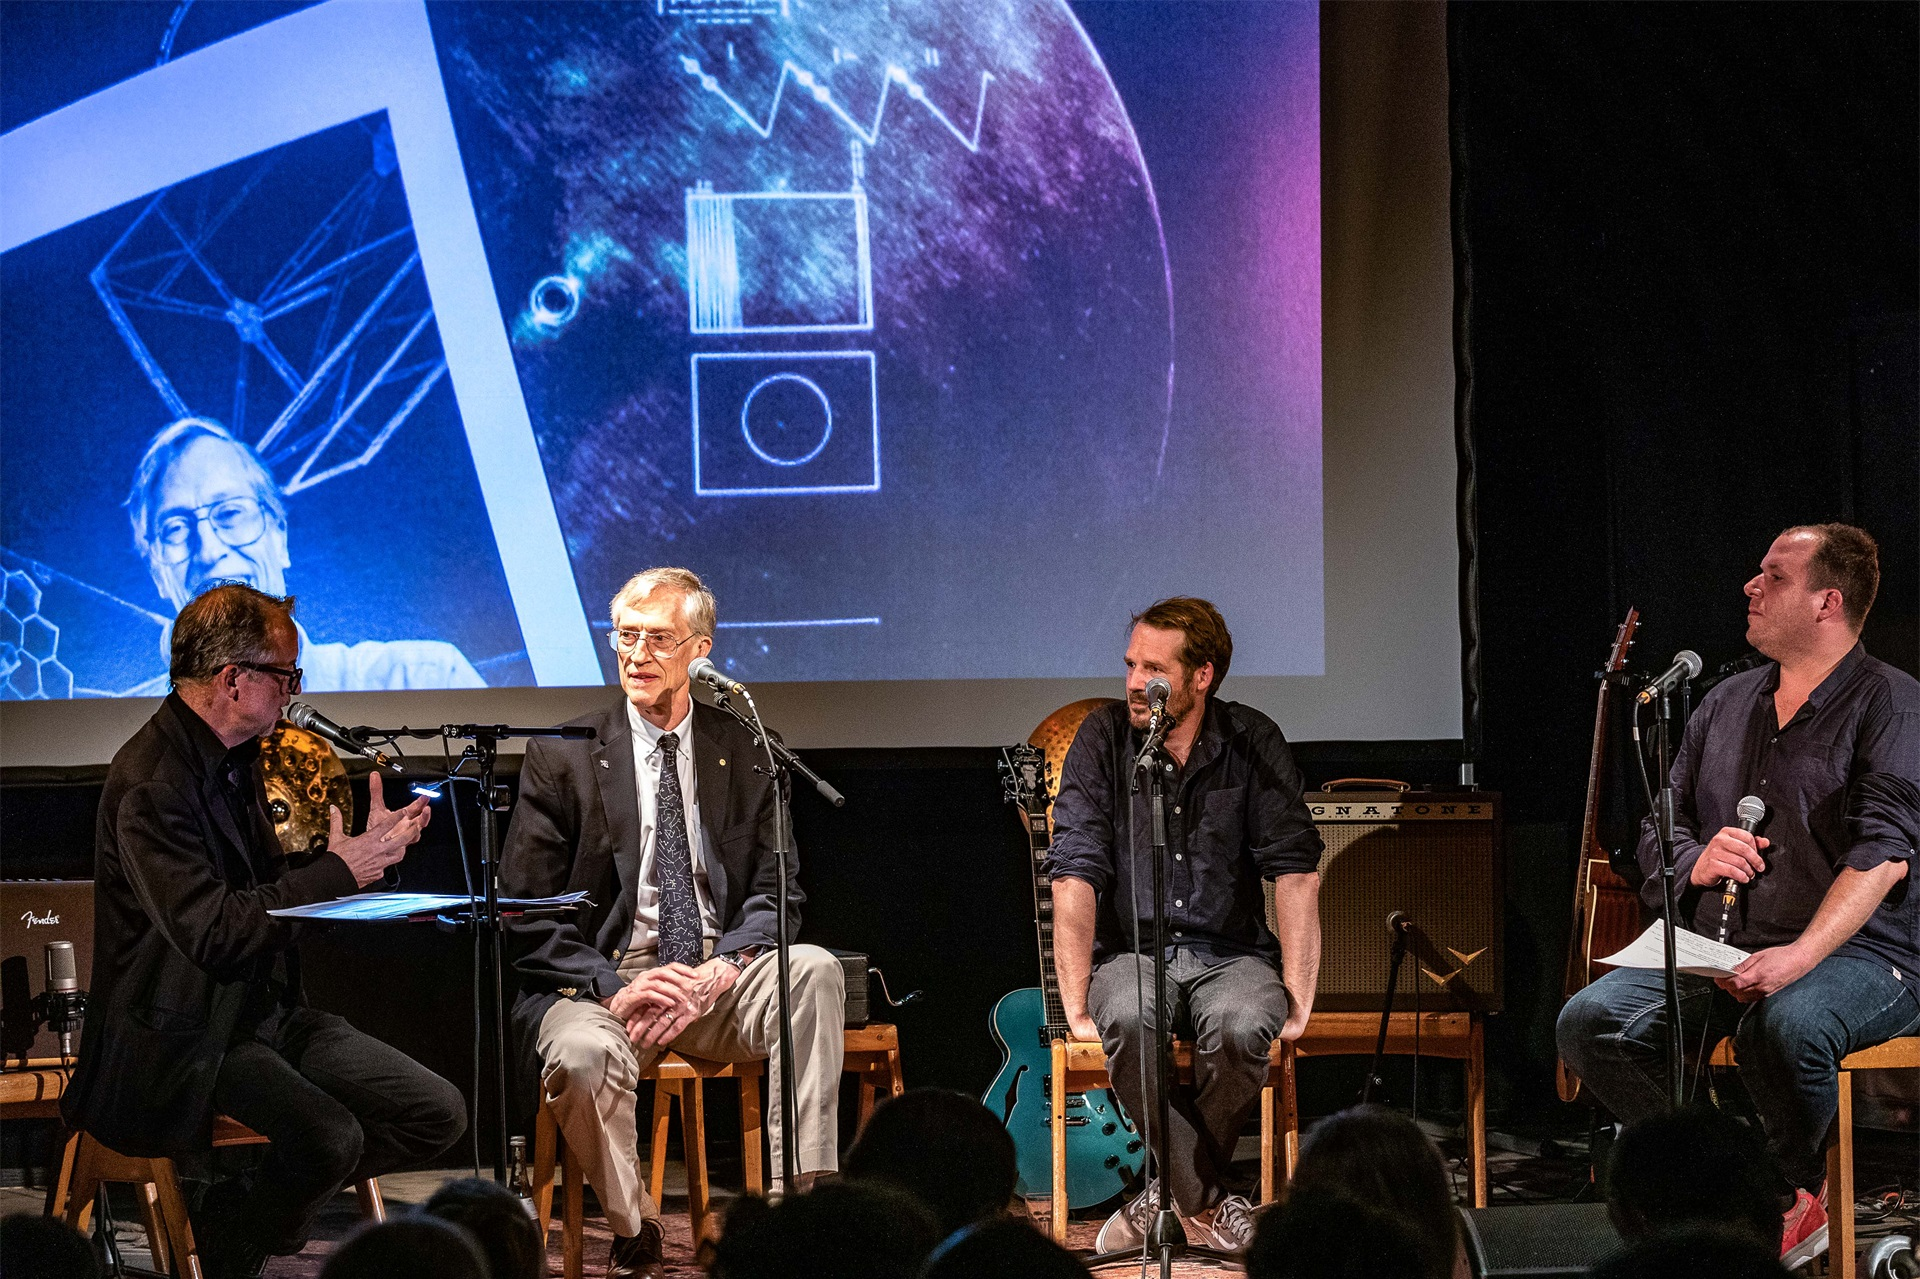 Voyager III – A Musical Journey Through Interstellar Space  (2019) - Nobel Laureate John C. Mather and singer-songwriter Gisbert zu Knyphausen, as well as musicians Hank Shizzoe, Michael Flury and director Verena Regensburger, take part in a thought experiment on which items of science and art should be included in the next golden record. This event has been a cooperation between Lindau Nobel Laureate Meetings and Zeughaus Lindau e. V.